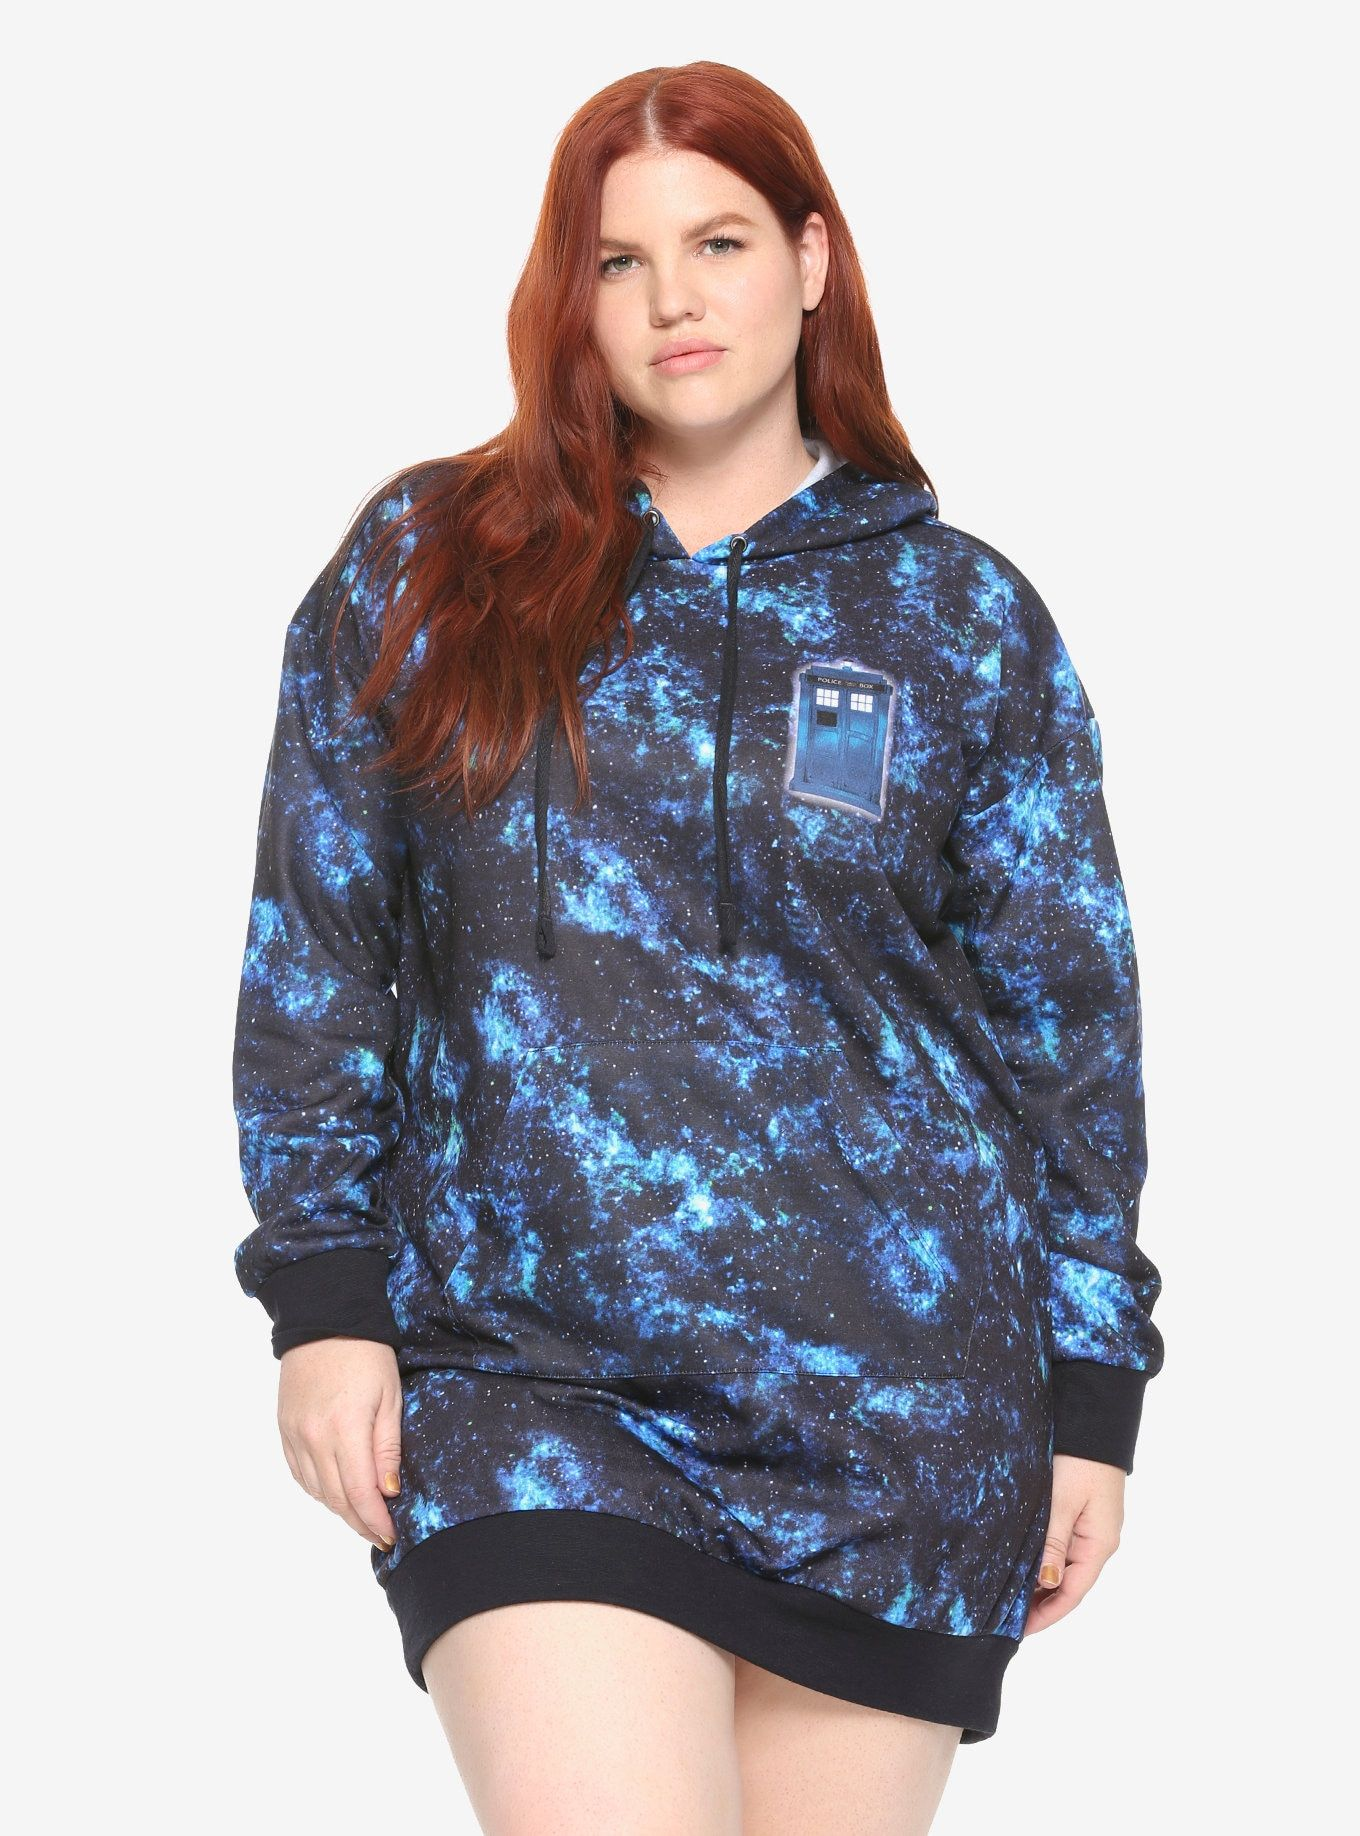 d260b50e2451f Her Universe Doctor Who Galaxy TARDIS Hoodie Dress Plus Size ...